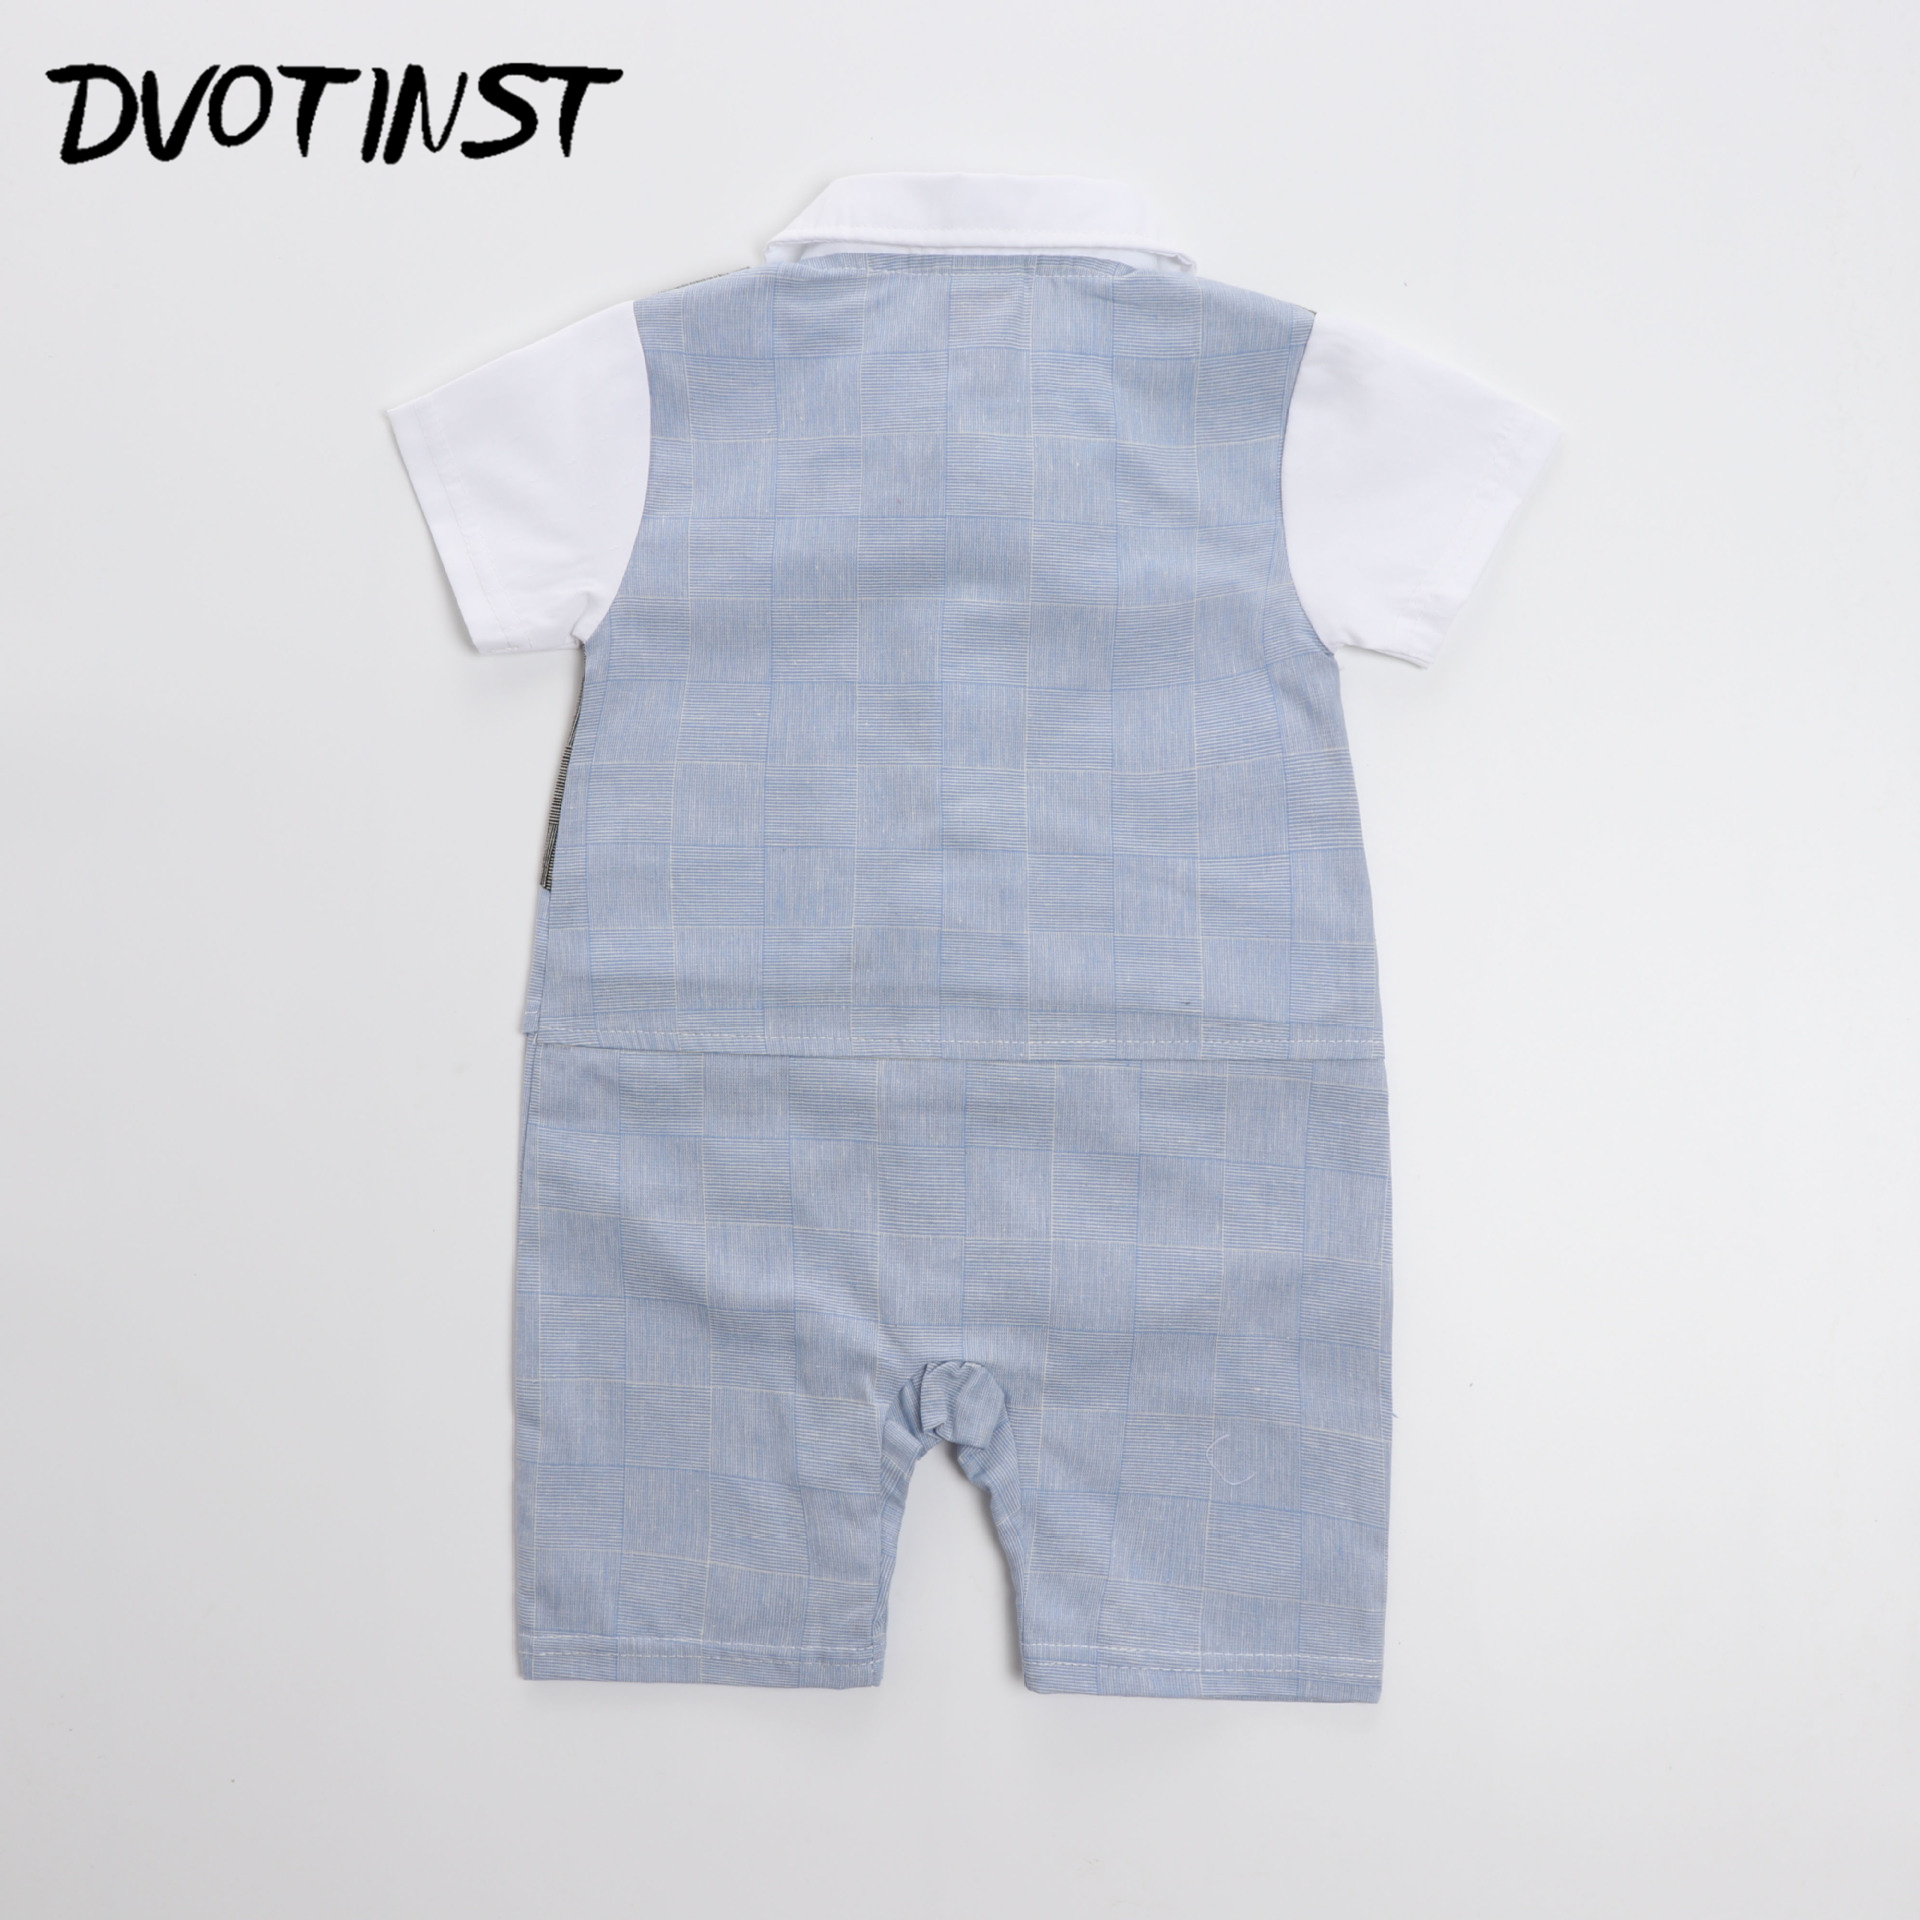 Baby Boys Gentleman Bow Tie Short Sleeve Romper Outfit Suit Infantil